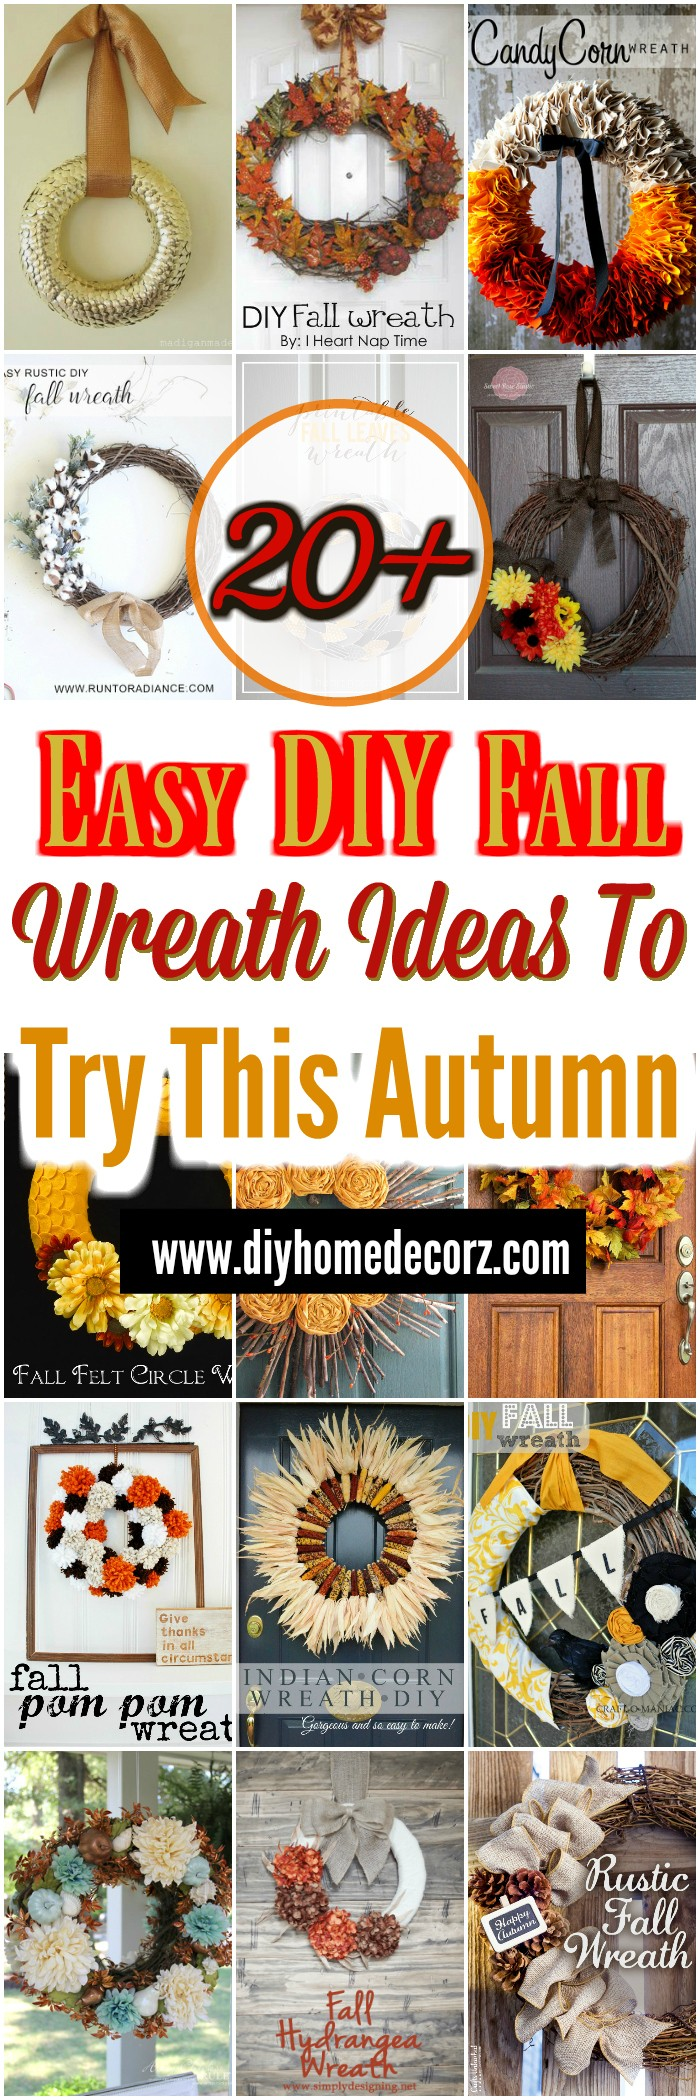 Easy DIY Fall Wreath Ideas To Try This Autumn